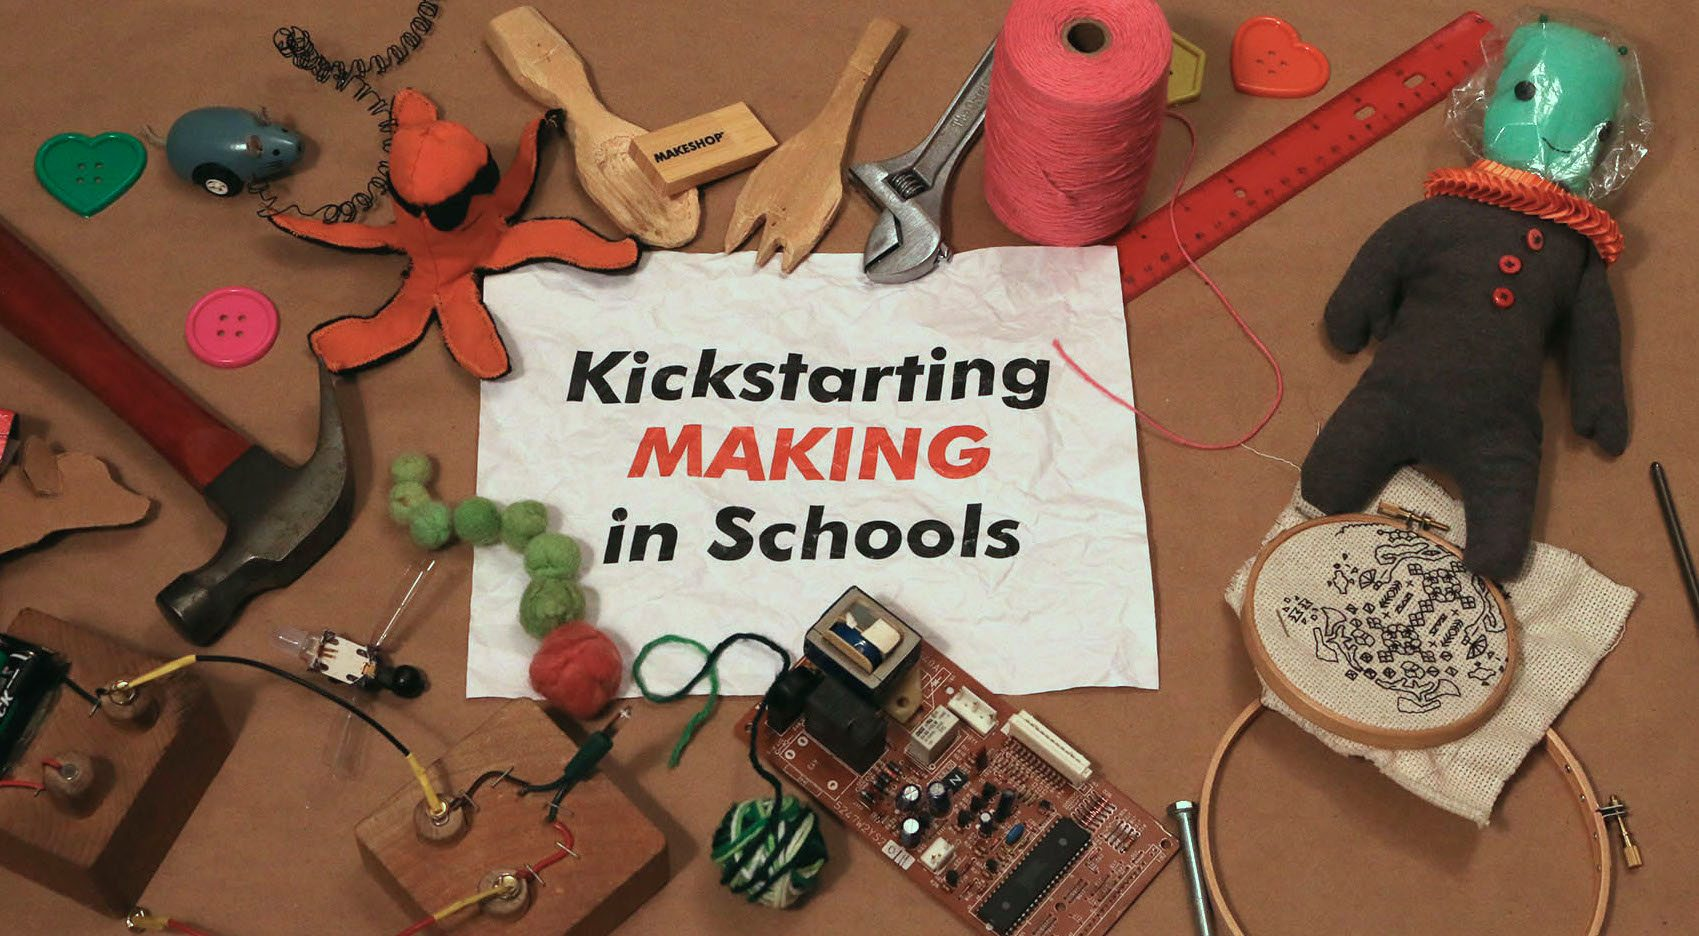 New Program Helps Schools Run Kickstarters for Maker Spaces